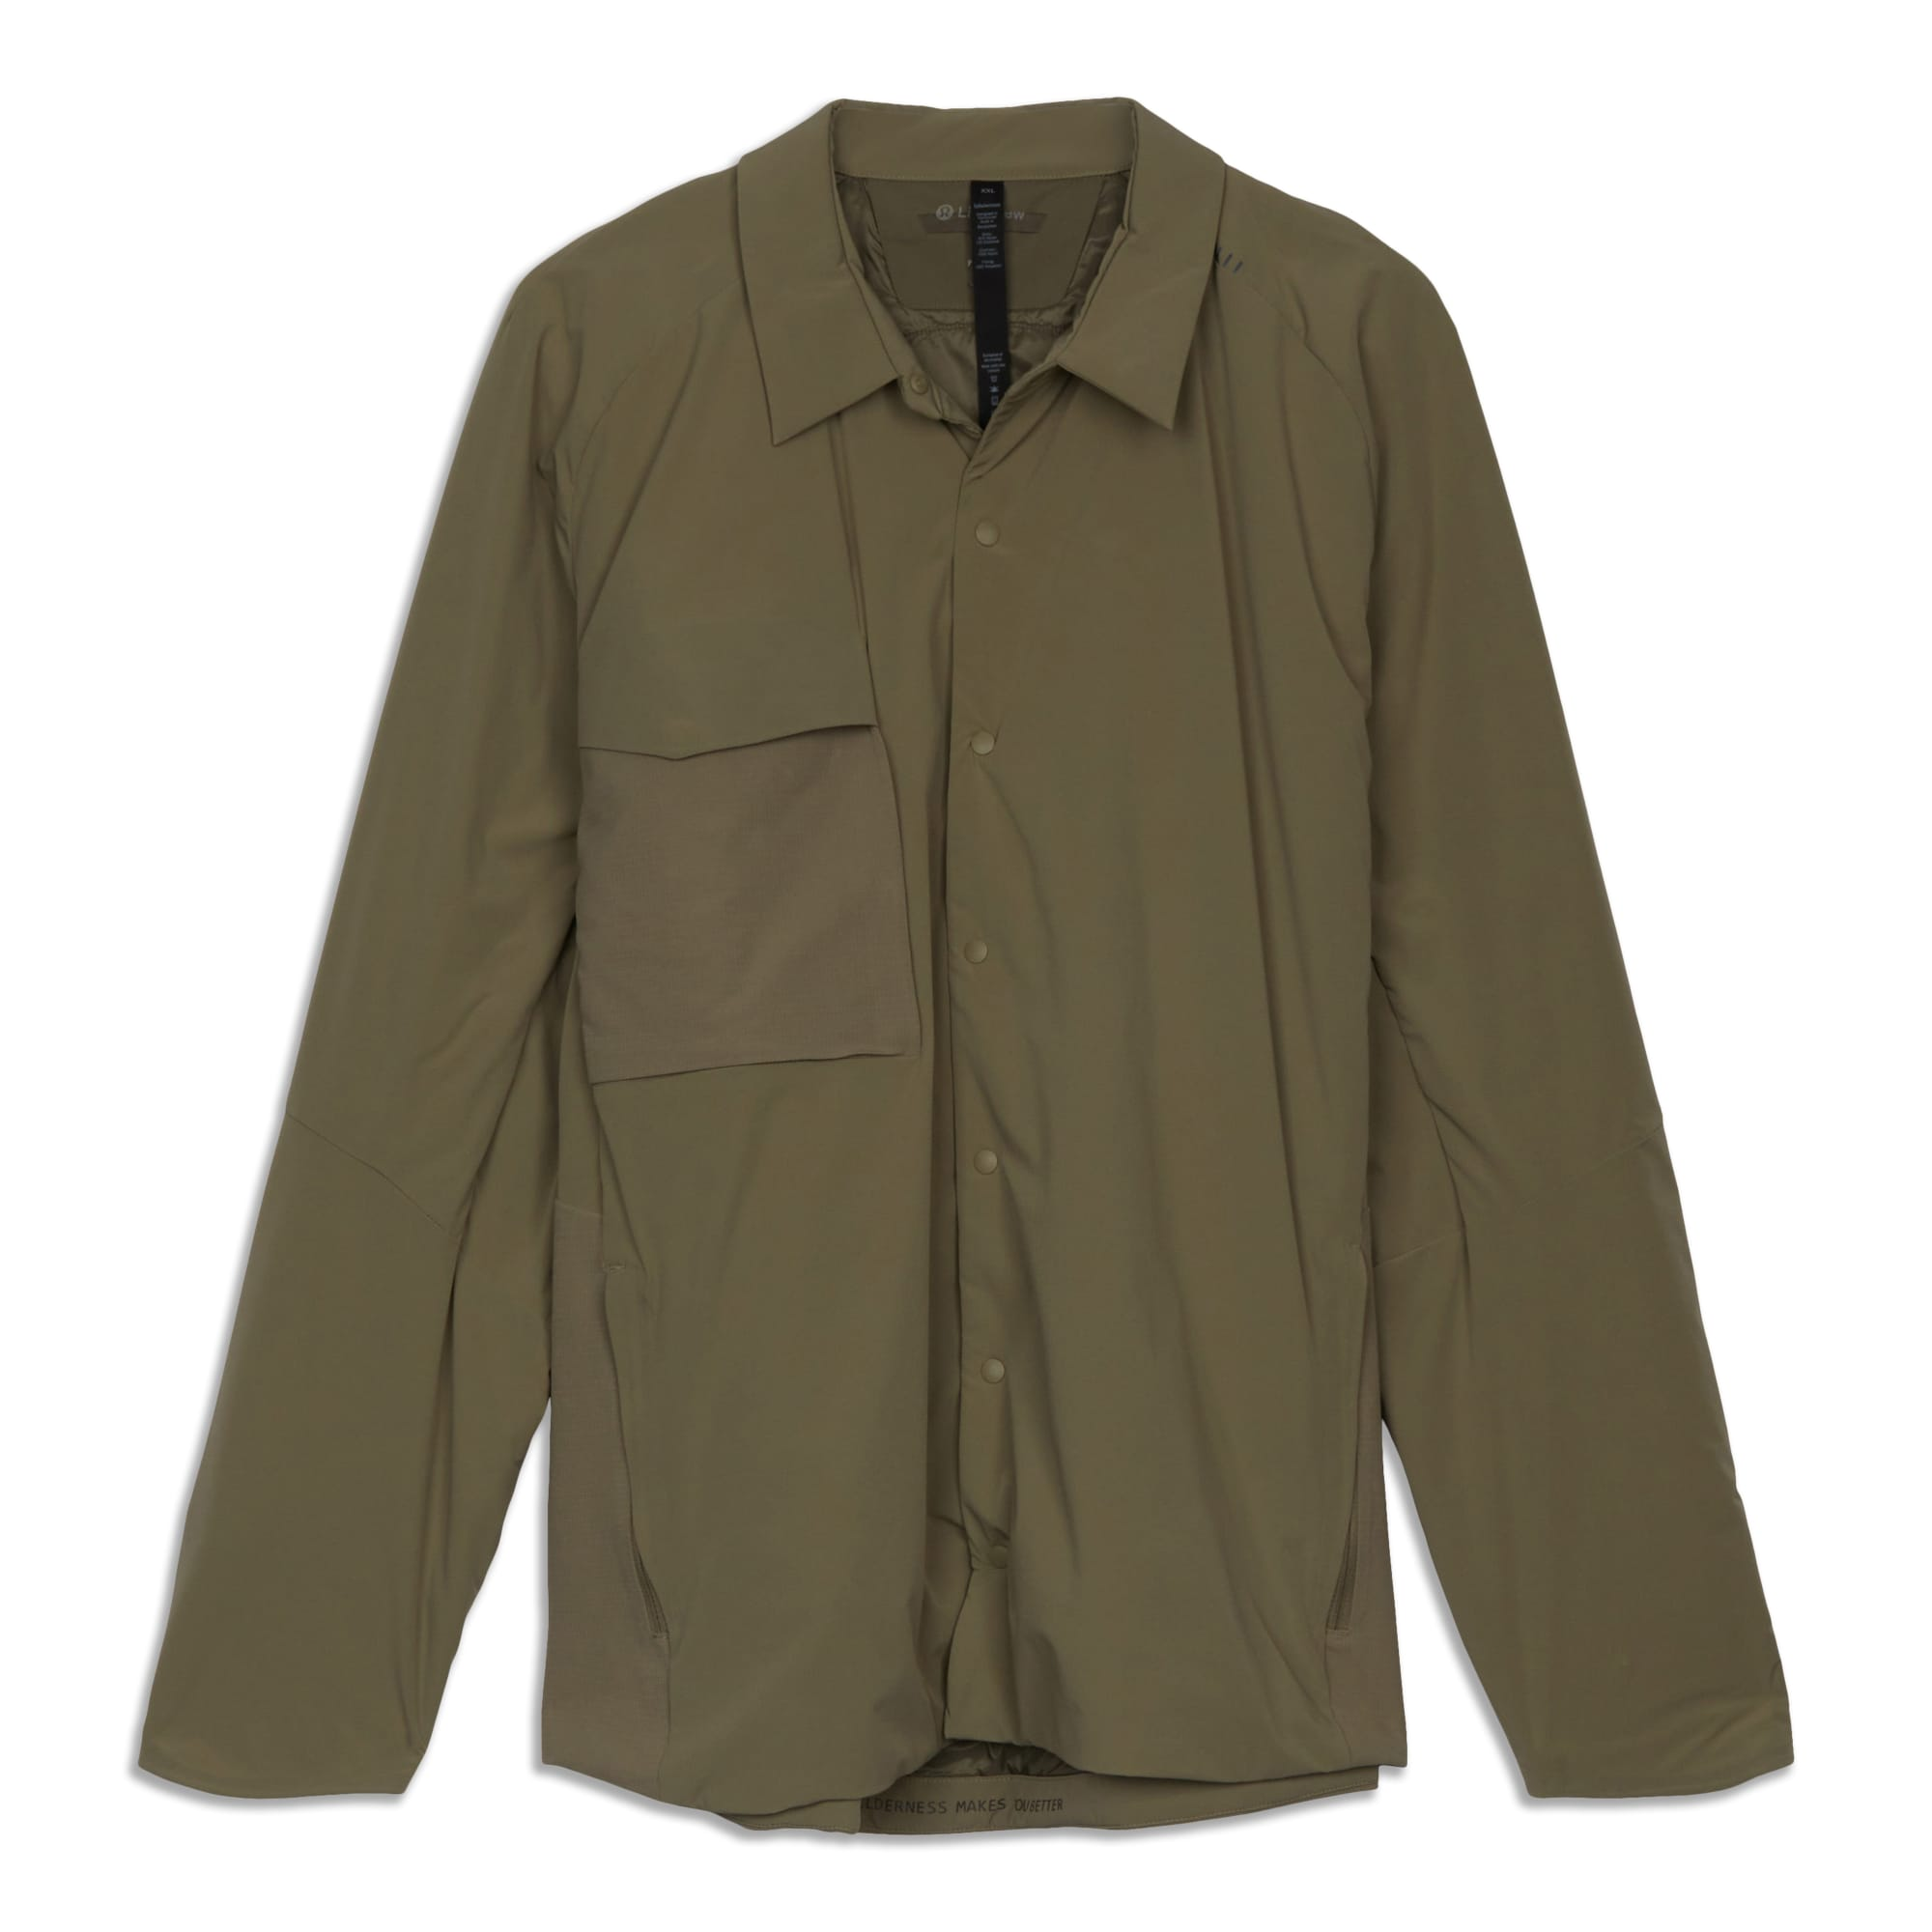 Main product image: Escape And Explore Collared Long Sleeve Shirt - Resale